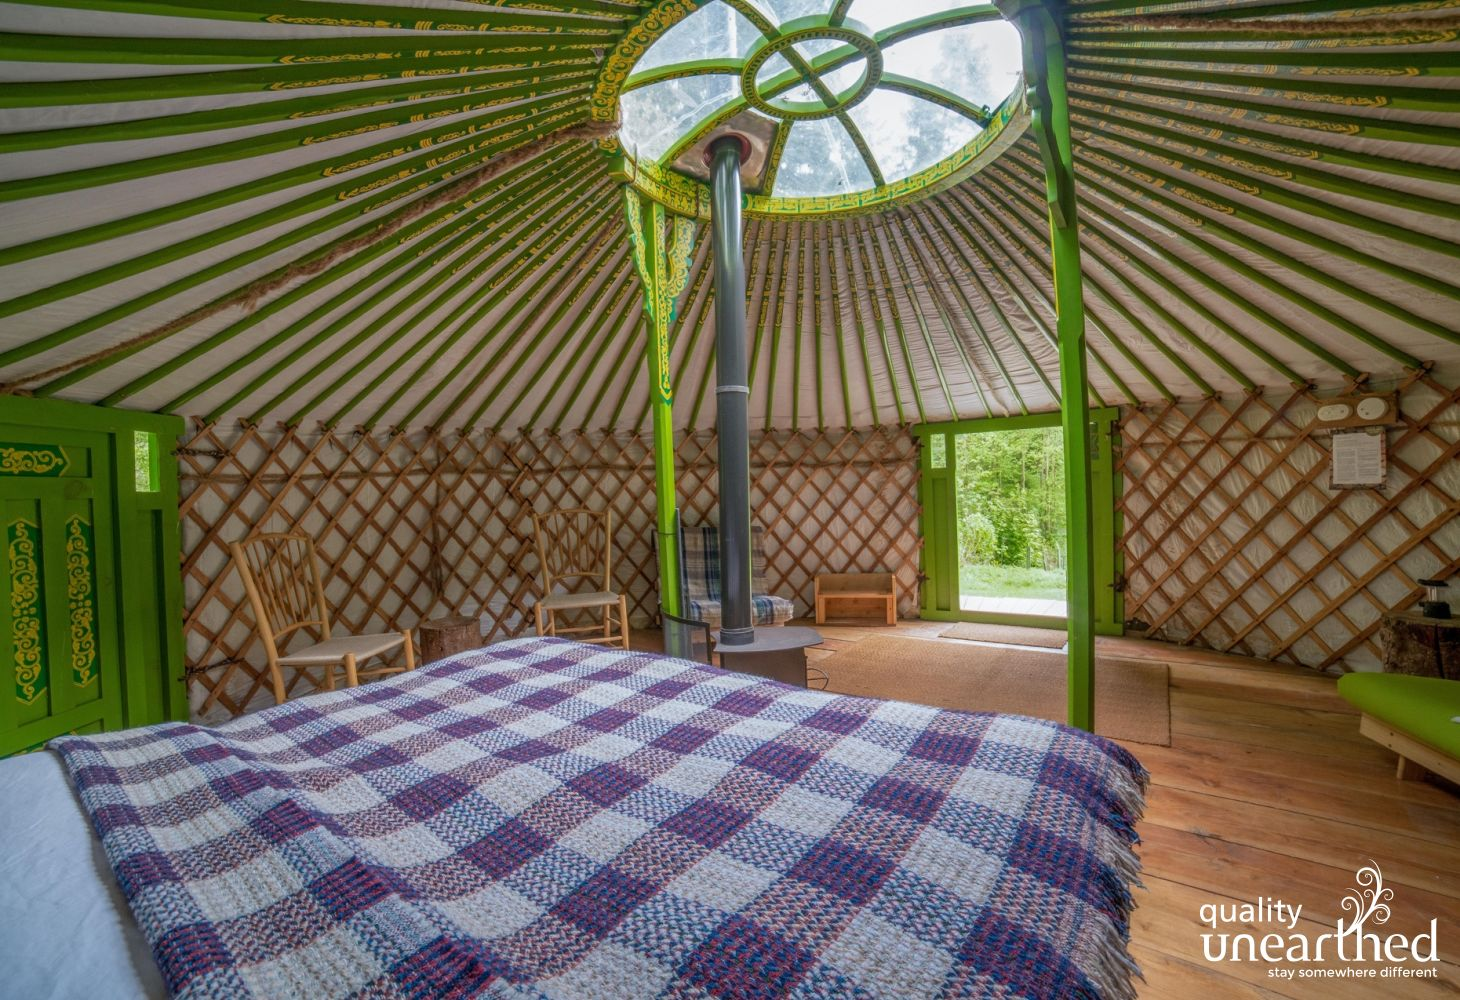 A view of the welsh woodland location through the front door of the family sized yurt